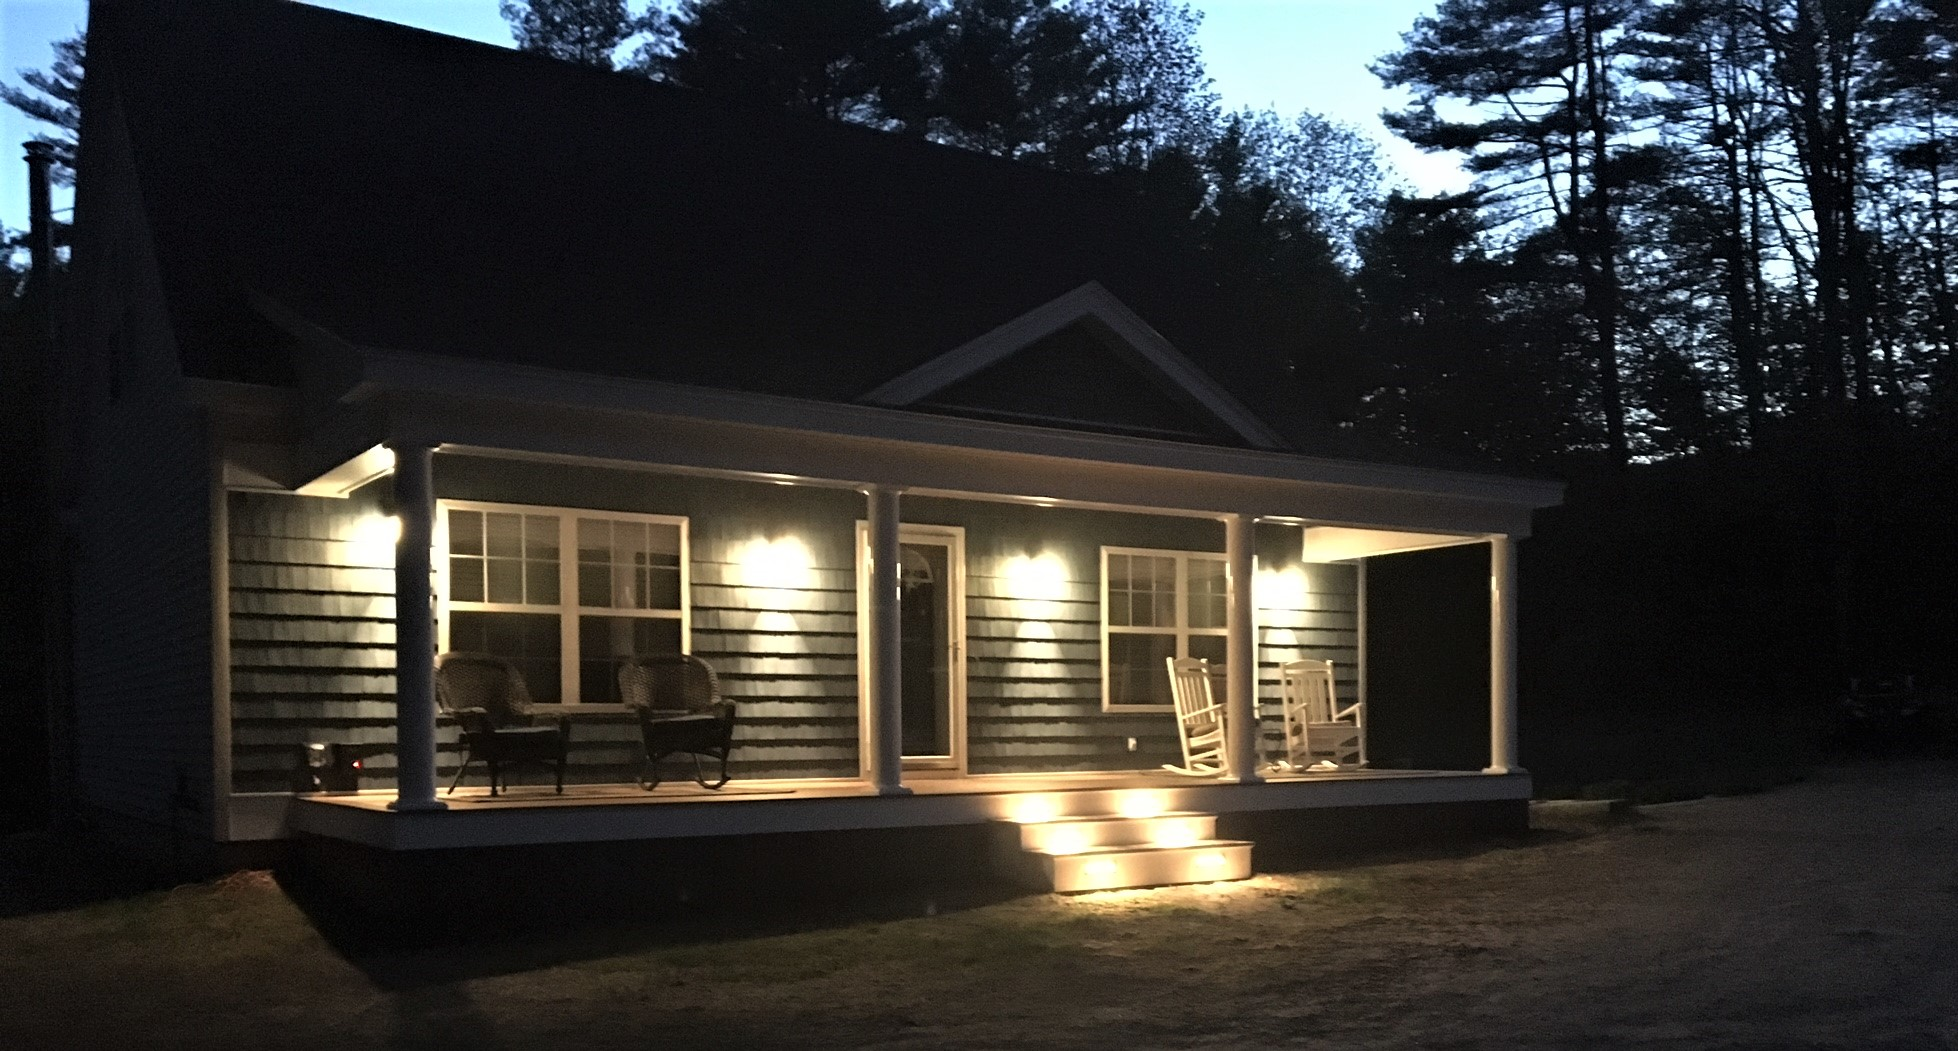 New porch with Lighting